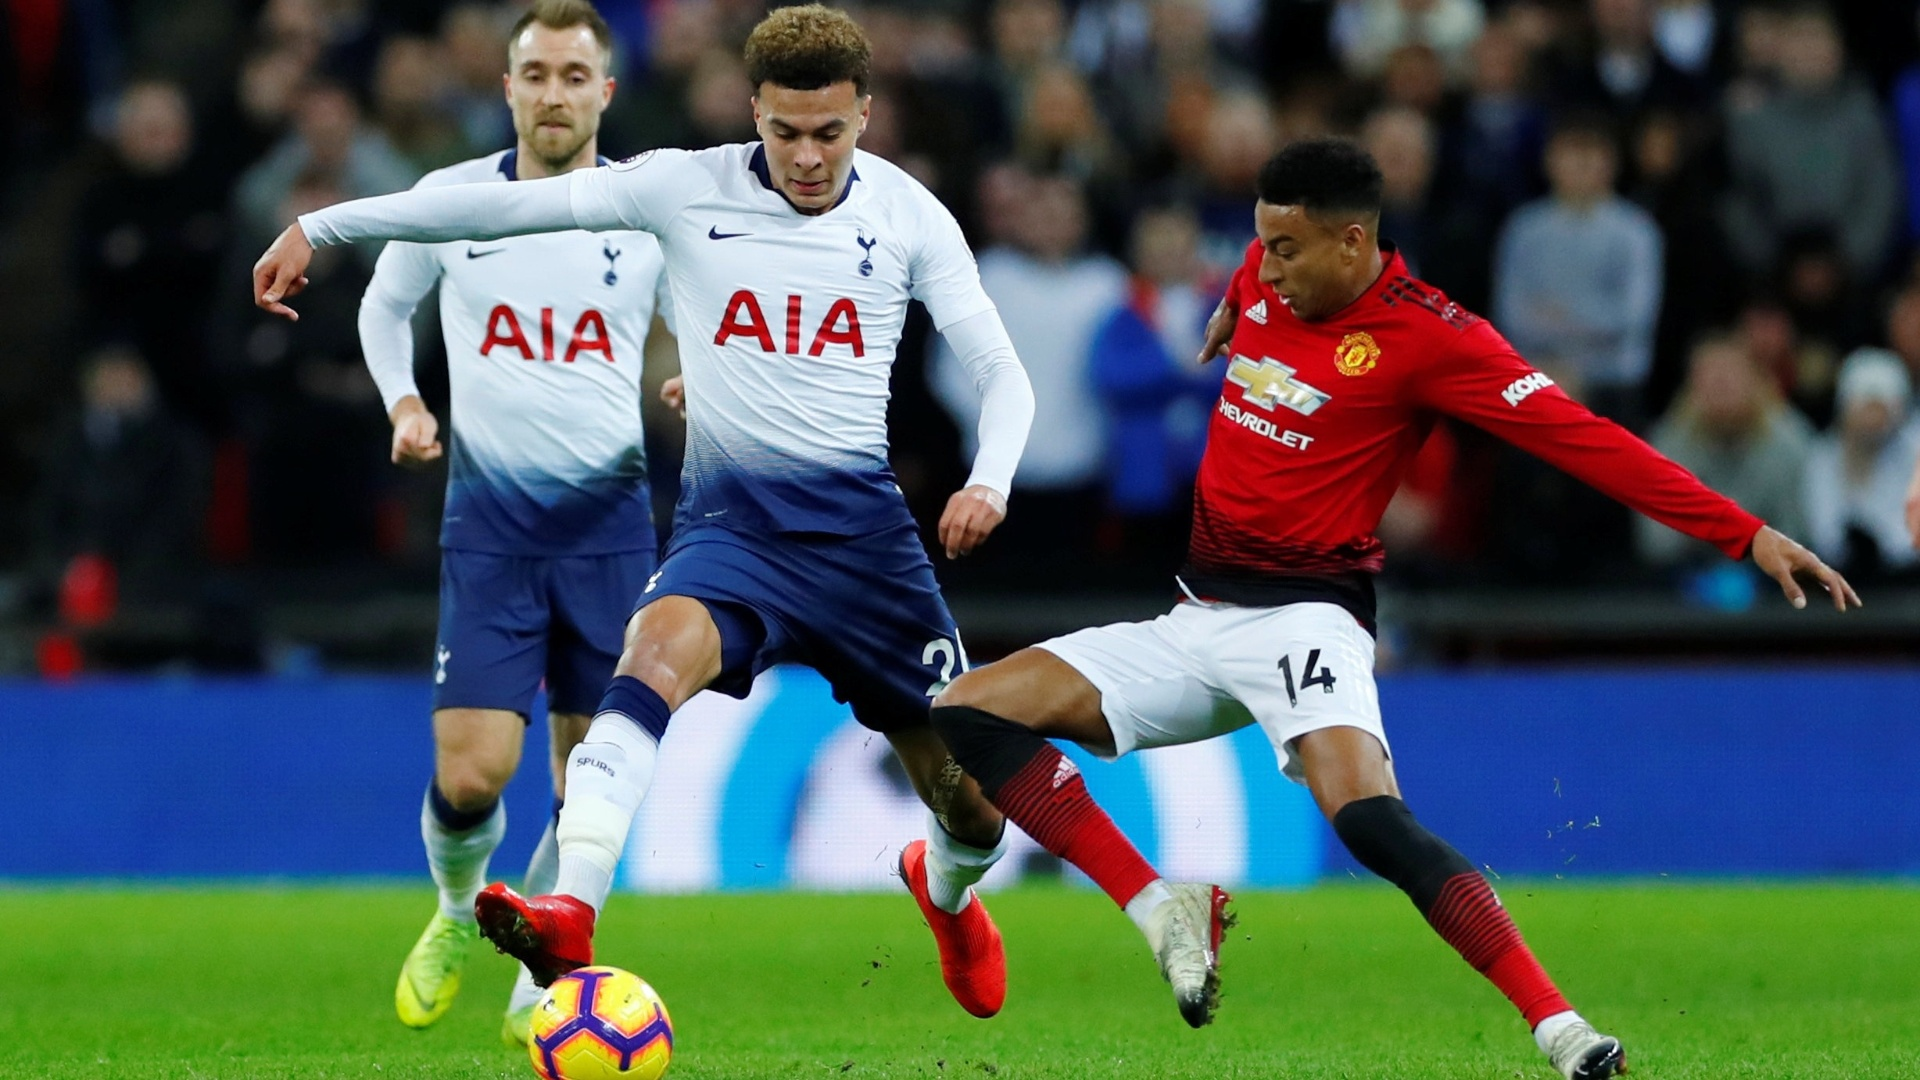 Dele Alli, do Tottenham, disputa bola com Jesse Lingard, do Manchester United